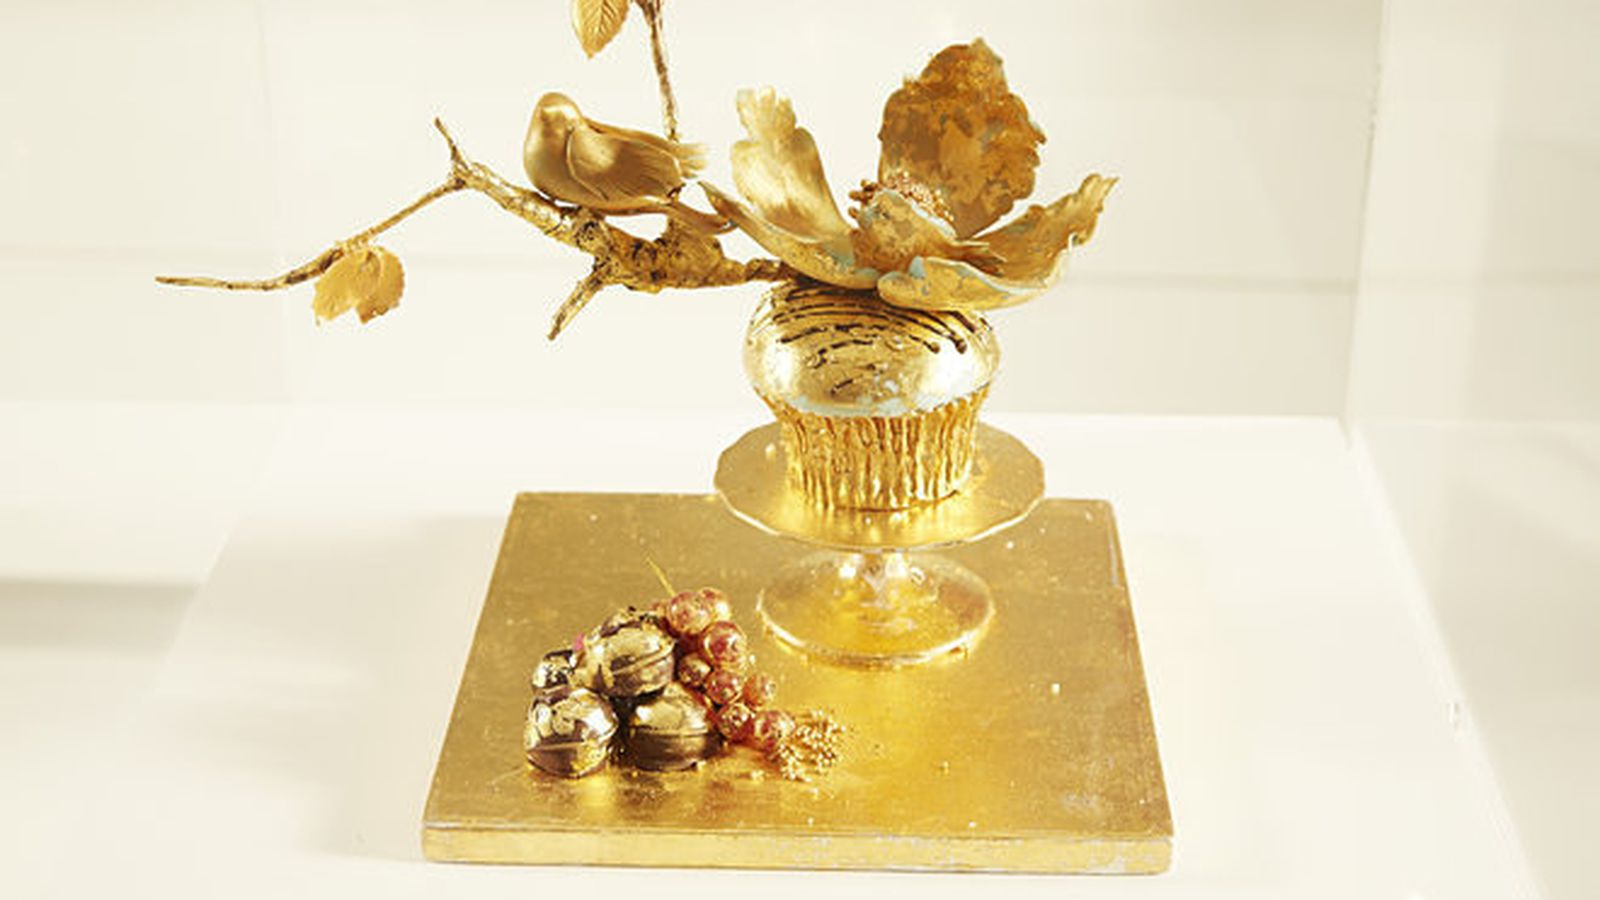 This $900 Cupcake Is Worth More Than the Entire Crumbs ...